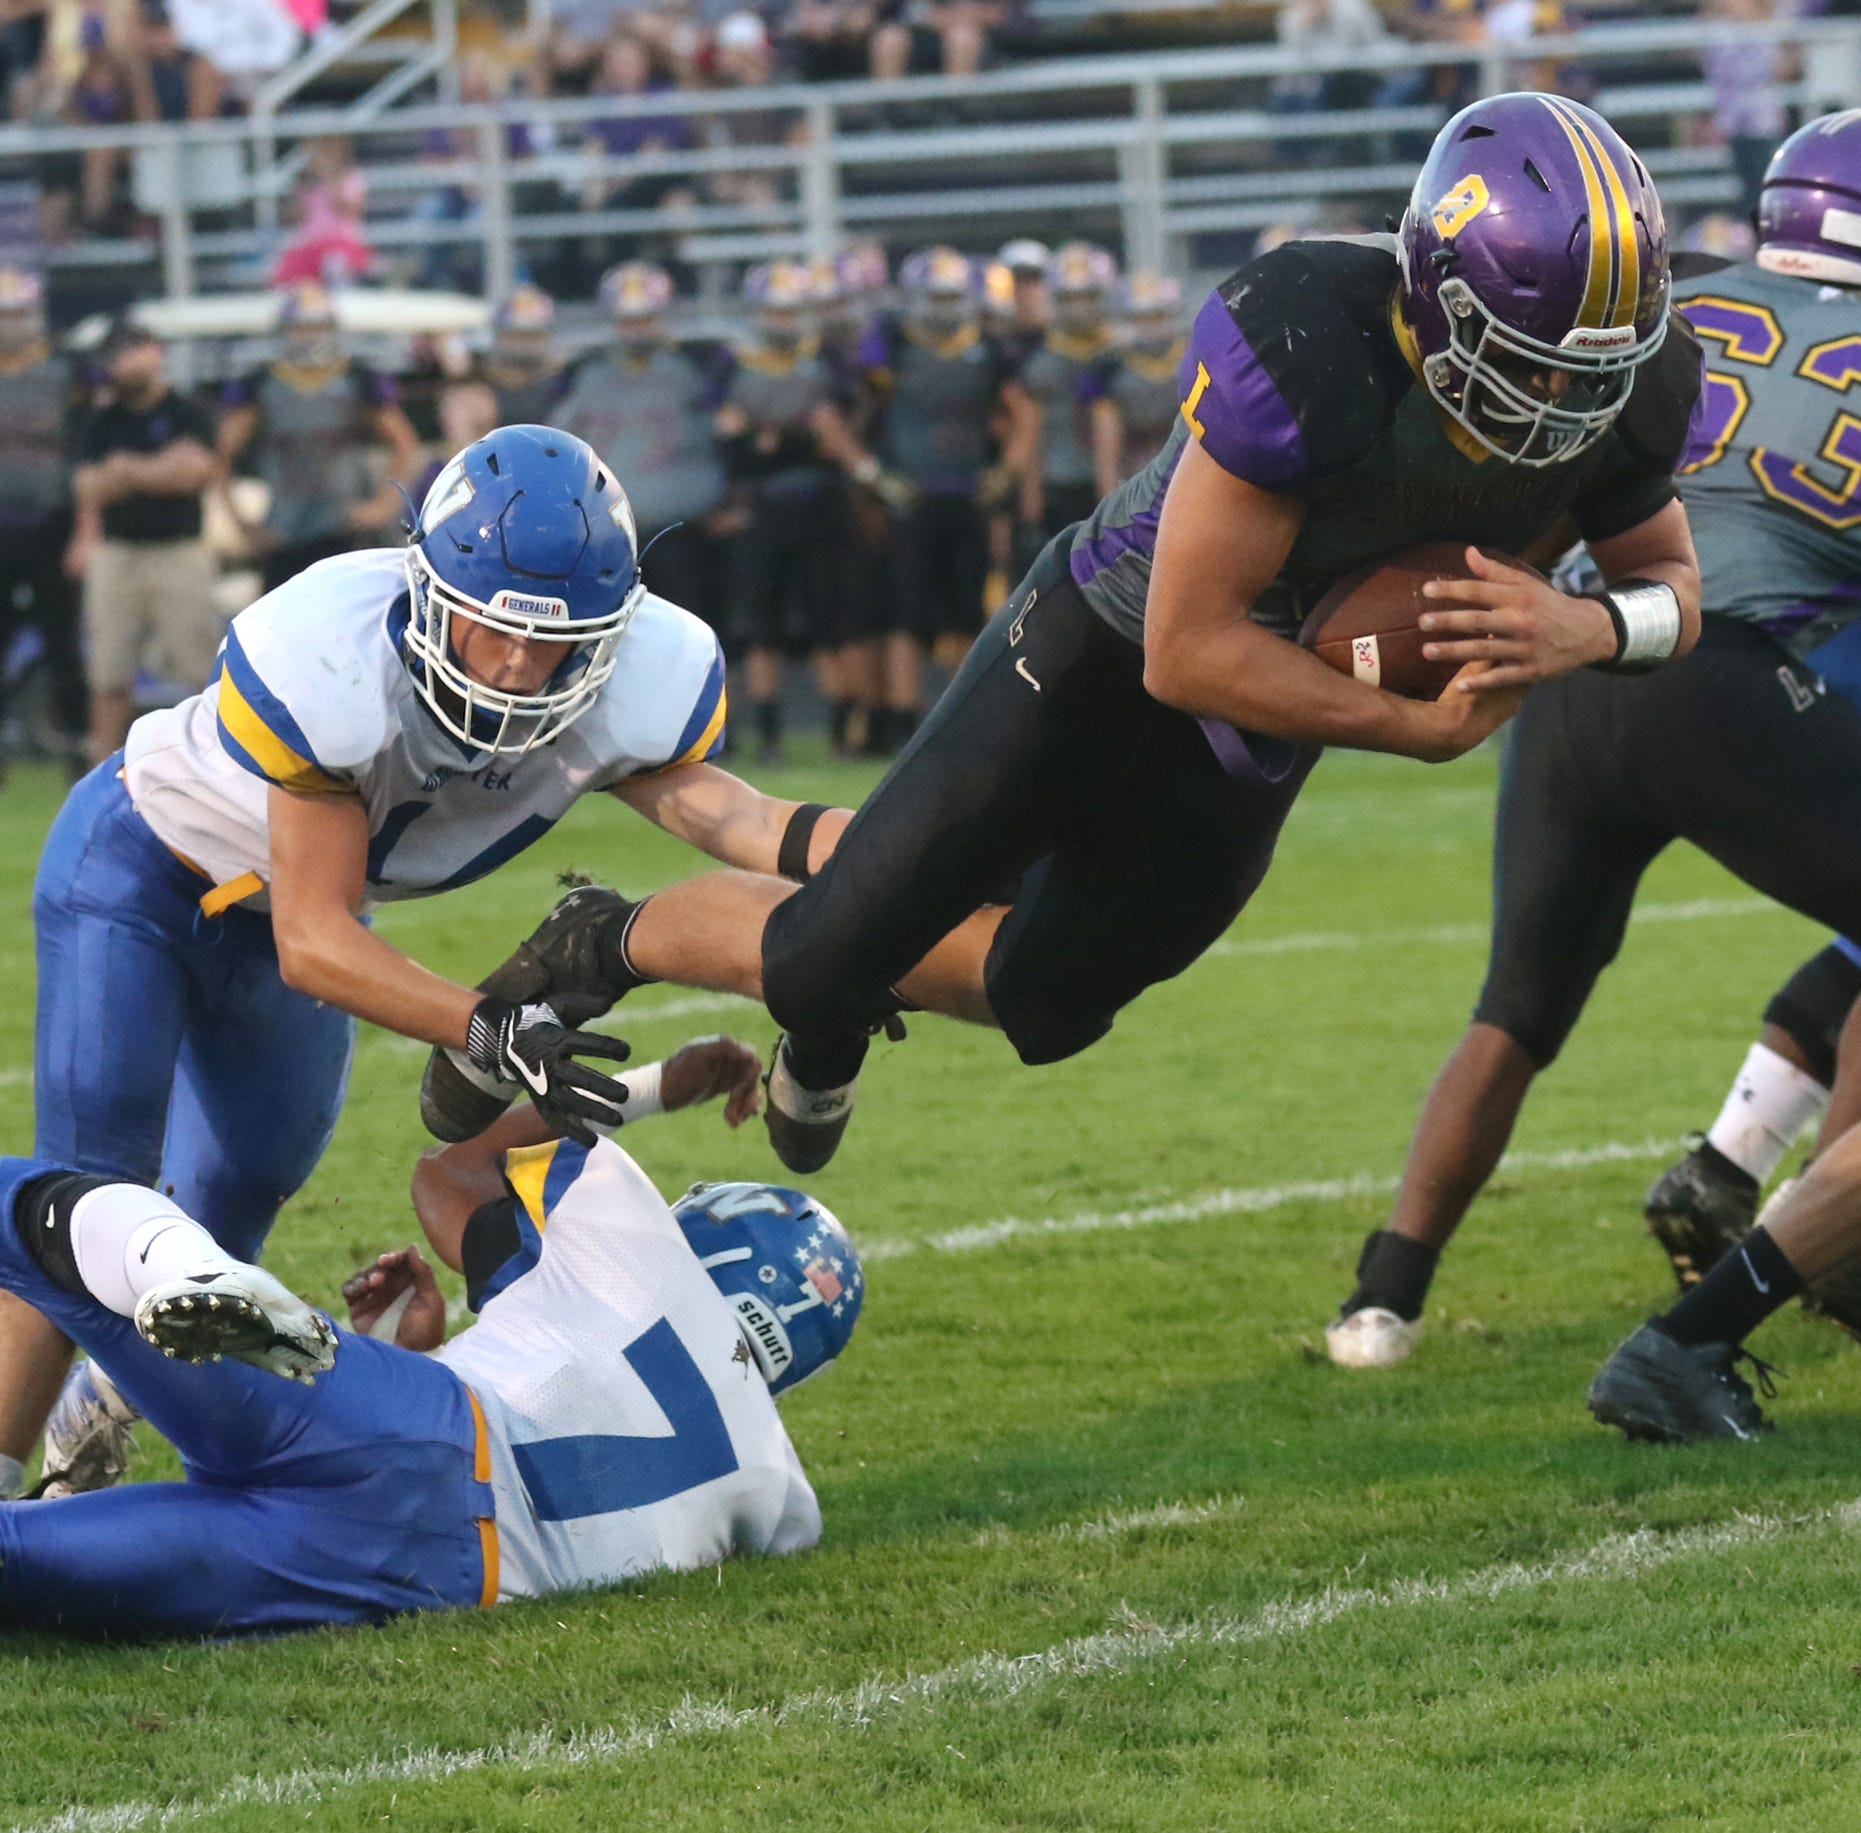 Lead gets away: Wooster storms back in second half to beat Lex